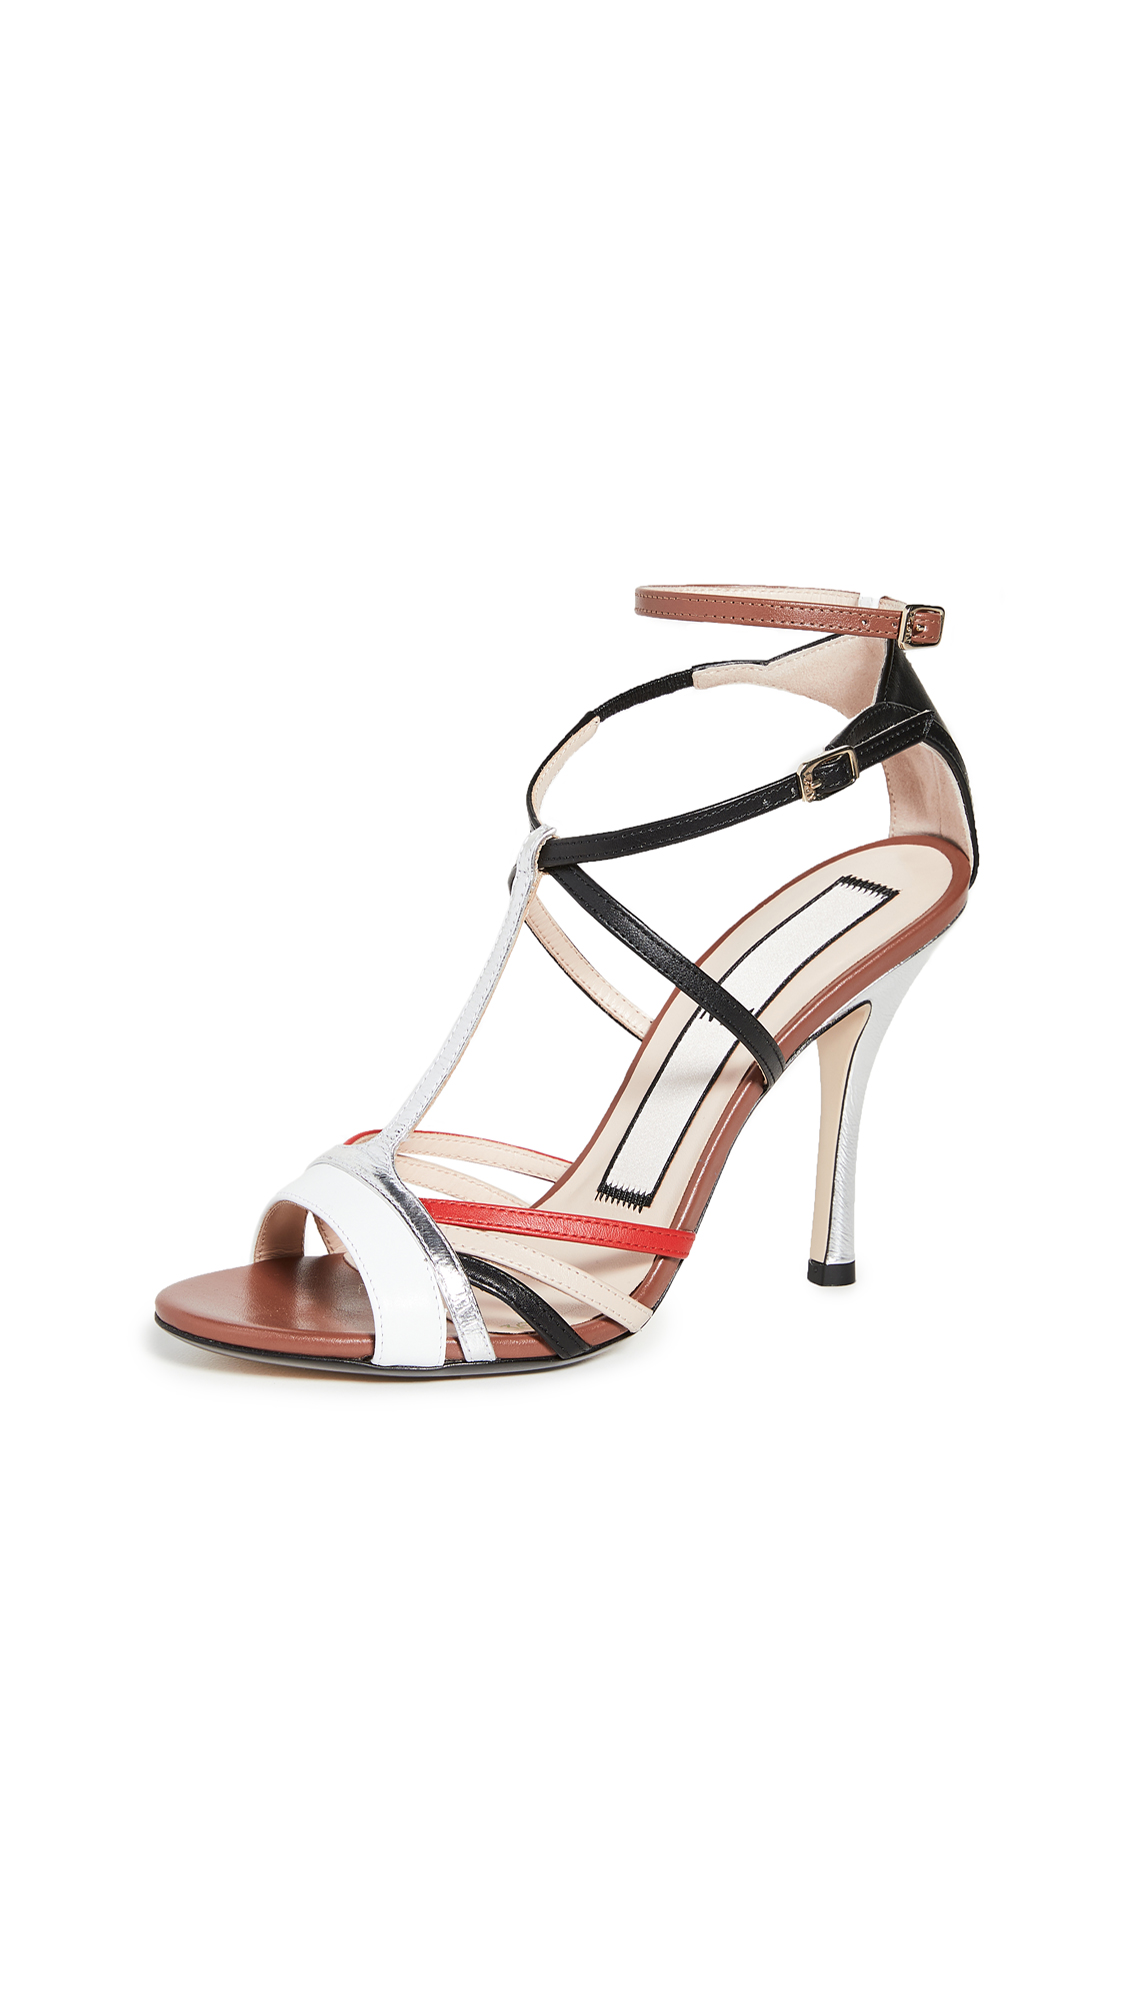 No. 21 Ankle Strap Sandals – 50% Off Sale